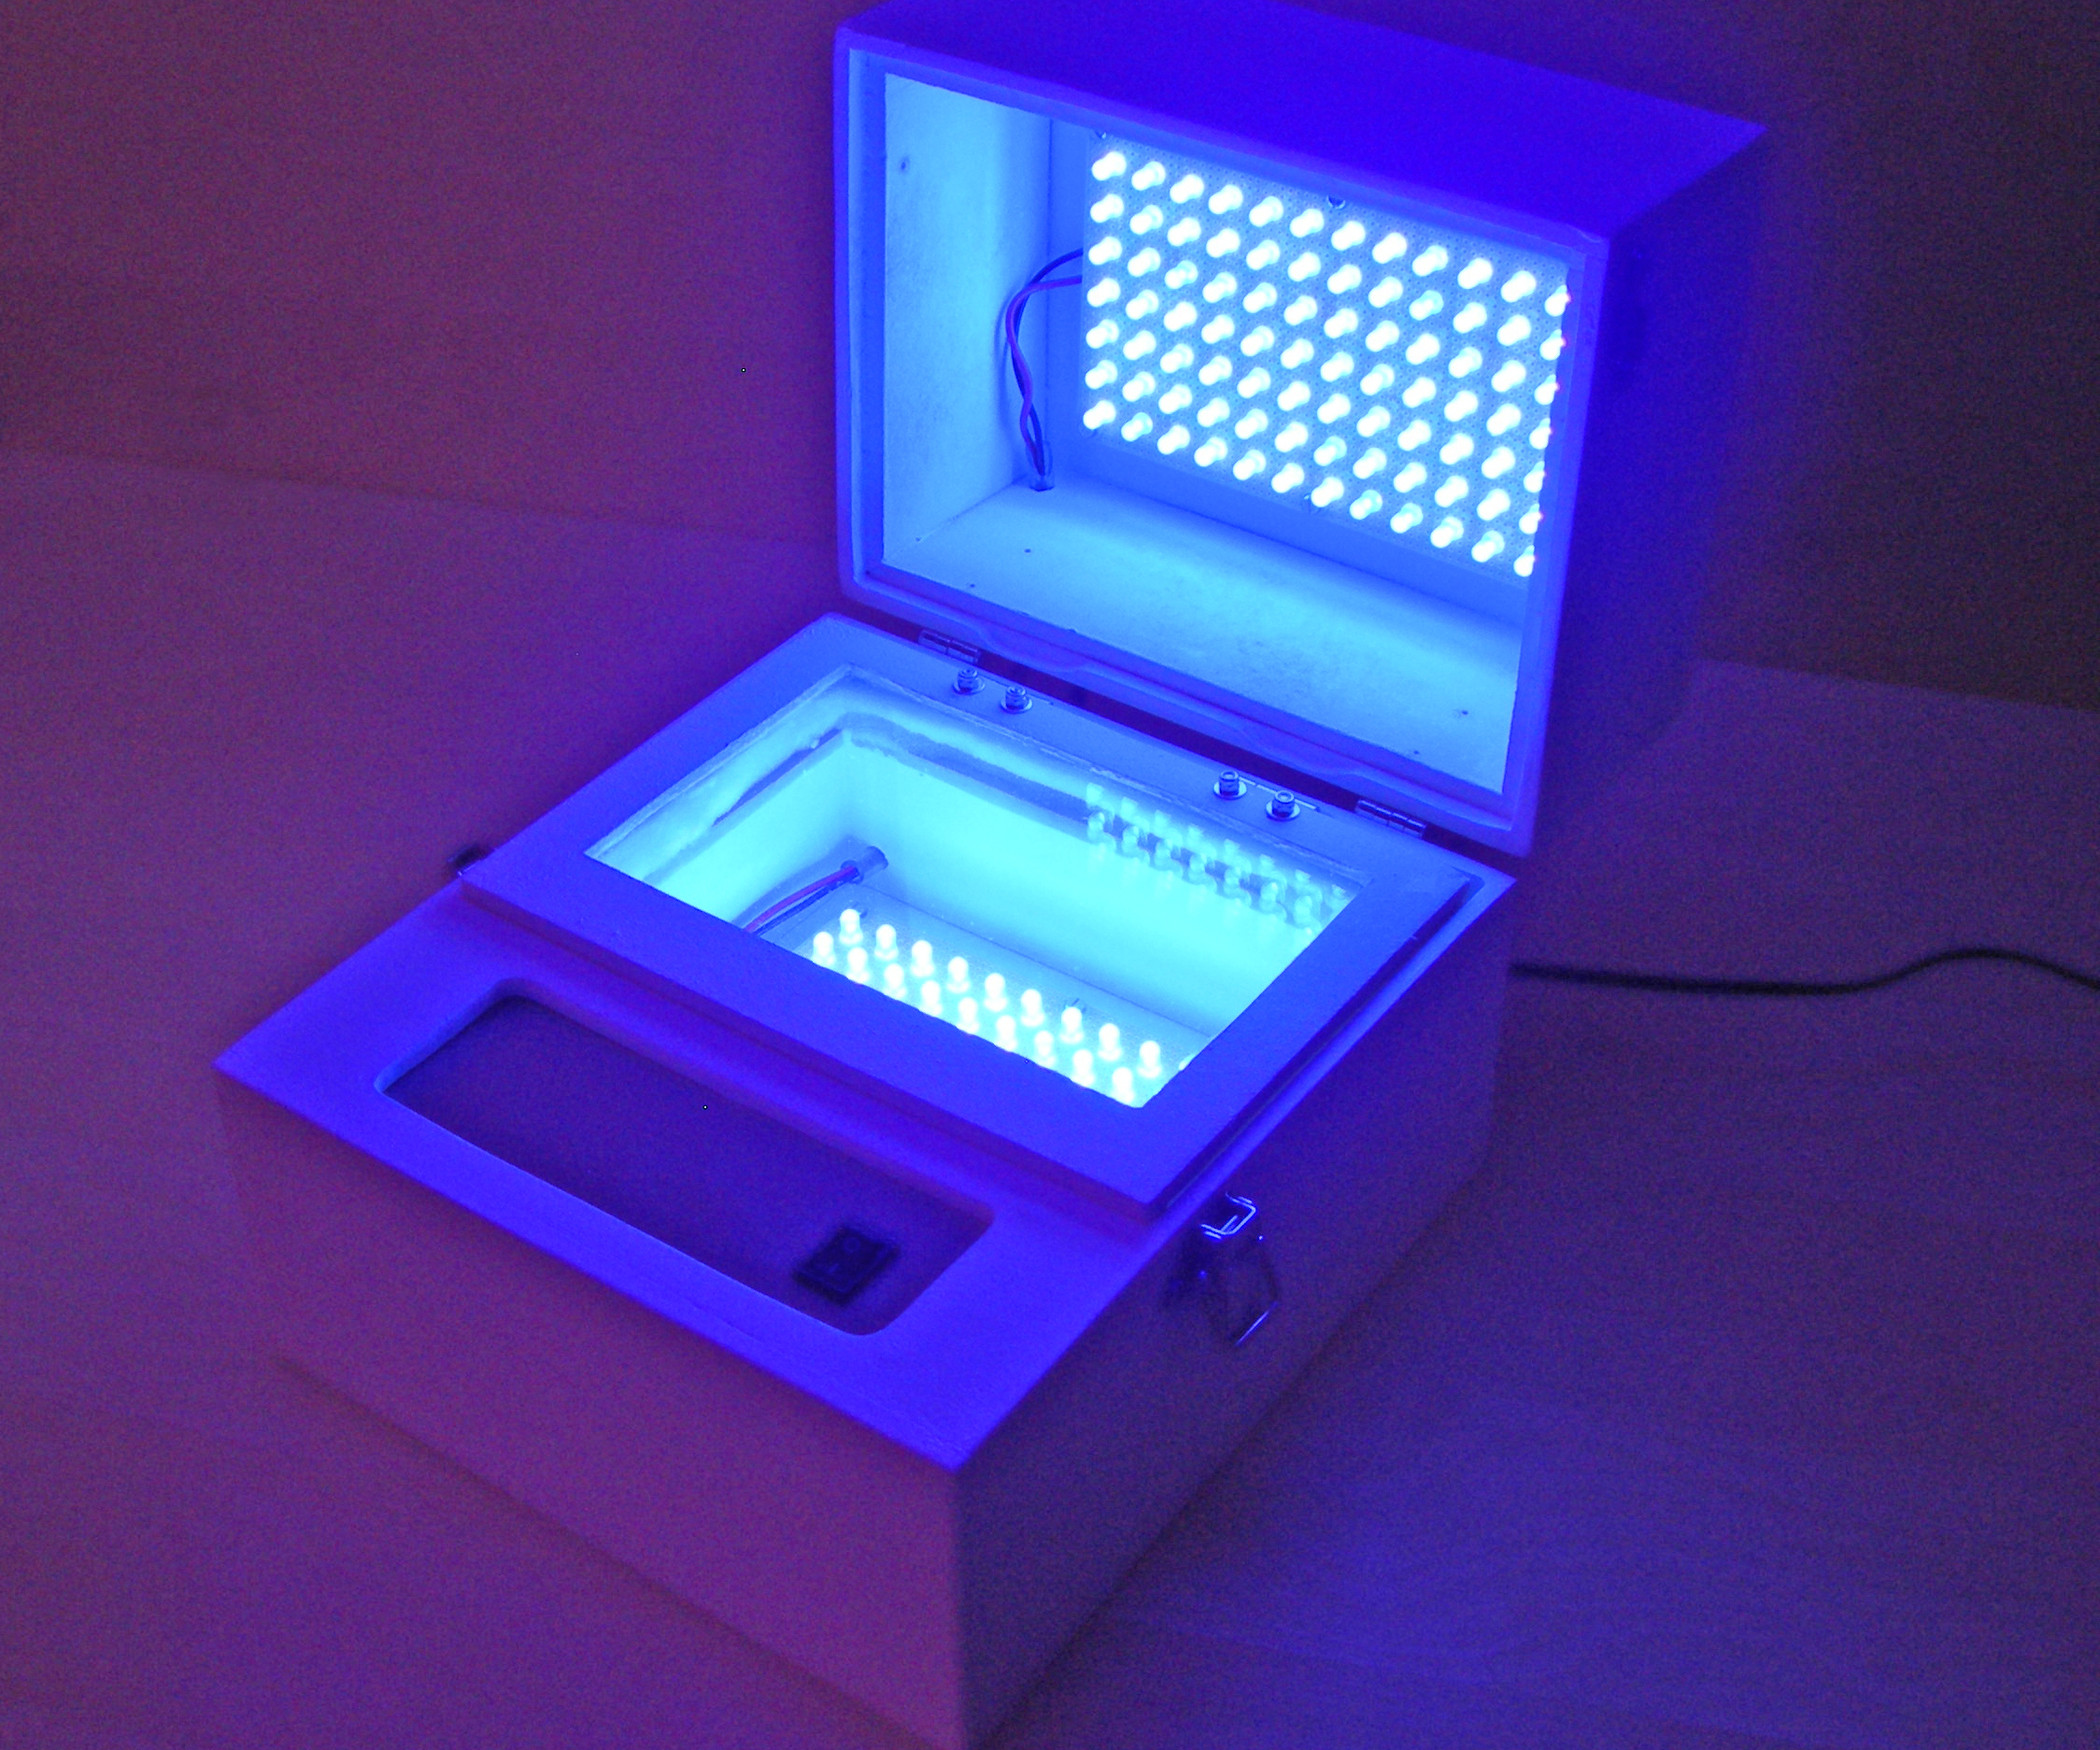 Best ideas about DIY Ultraviolet Light . Save or Pin UV LED Exposure Box 26 Steps with Now.